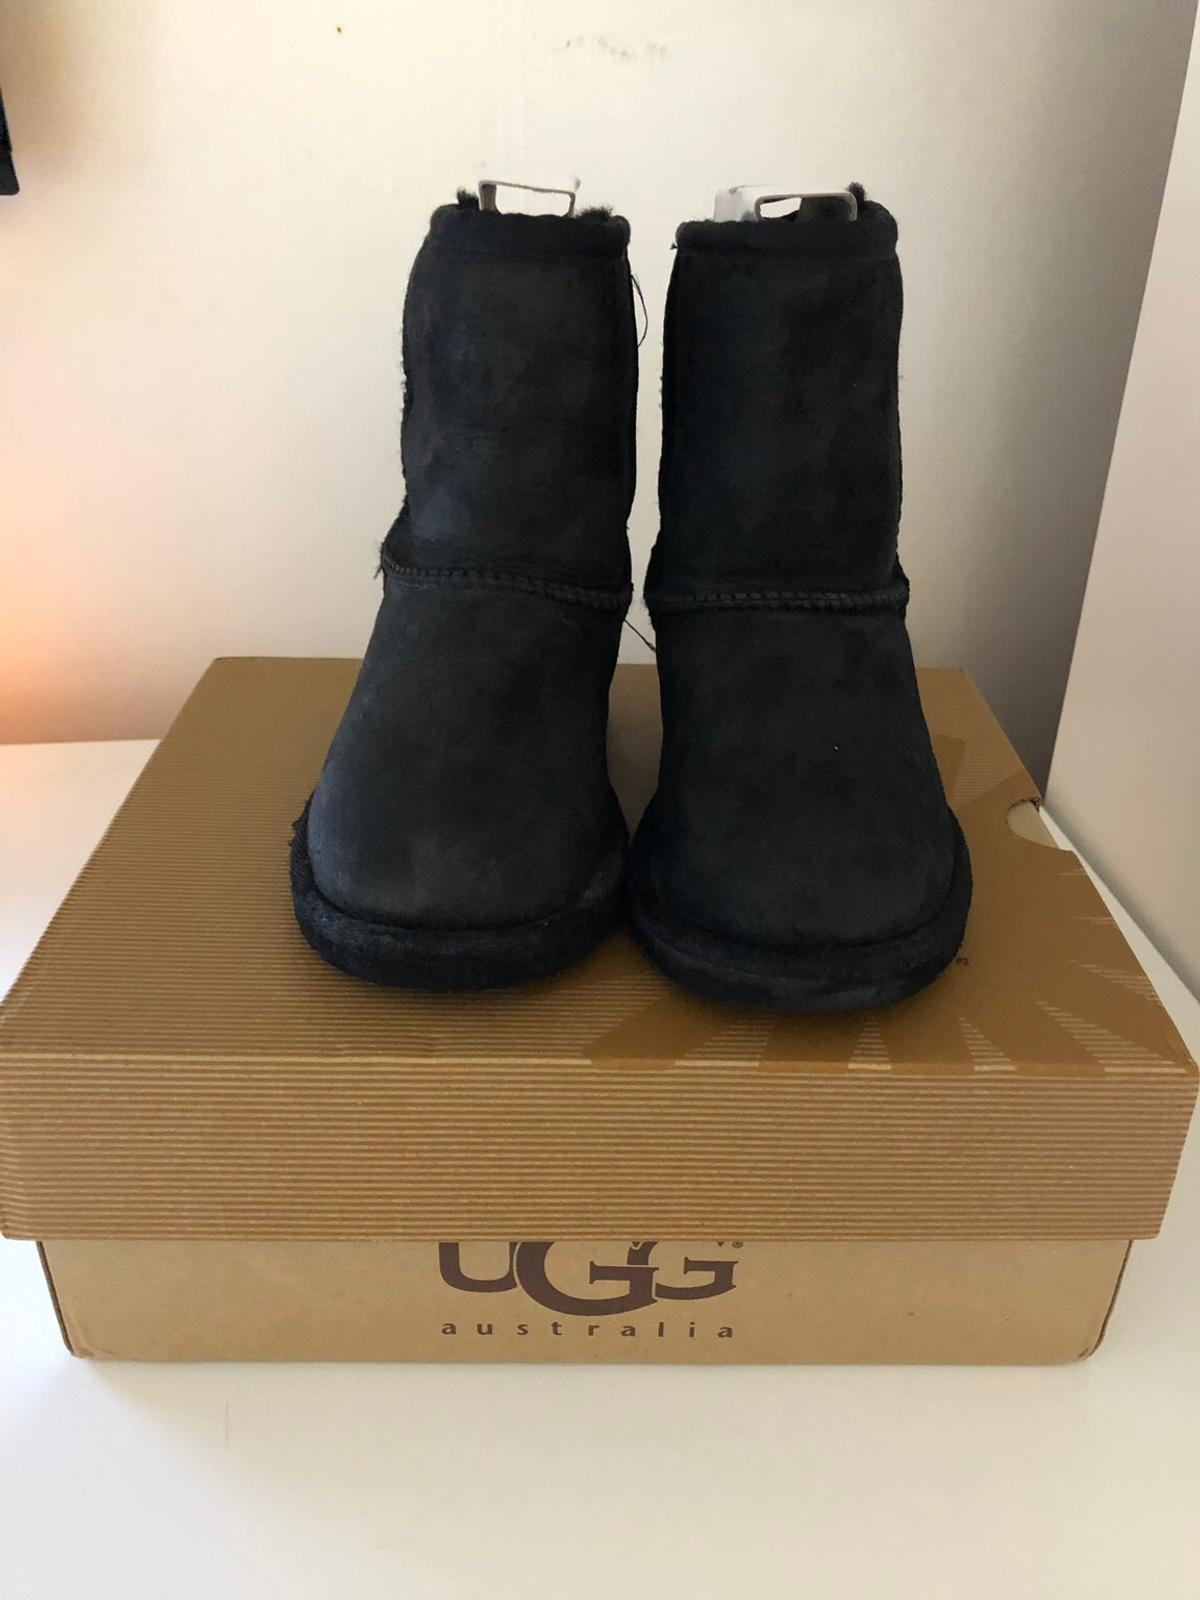 5a903e81fee Girls infant size 9 black ugg boots in N18 Enfield for £25.00 for ...